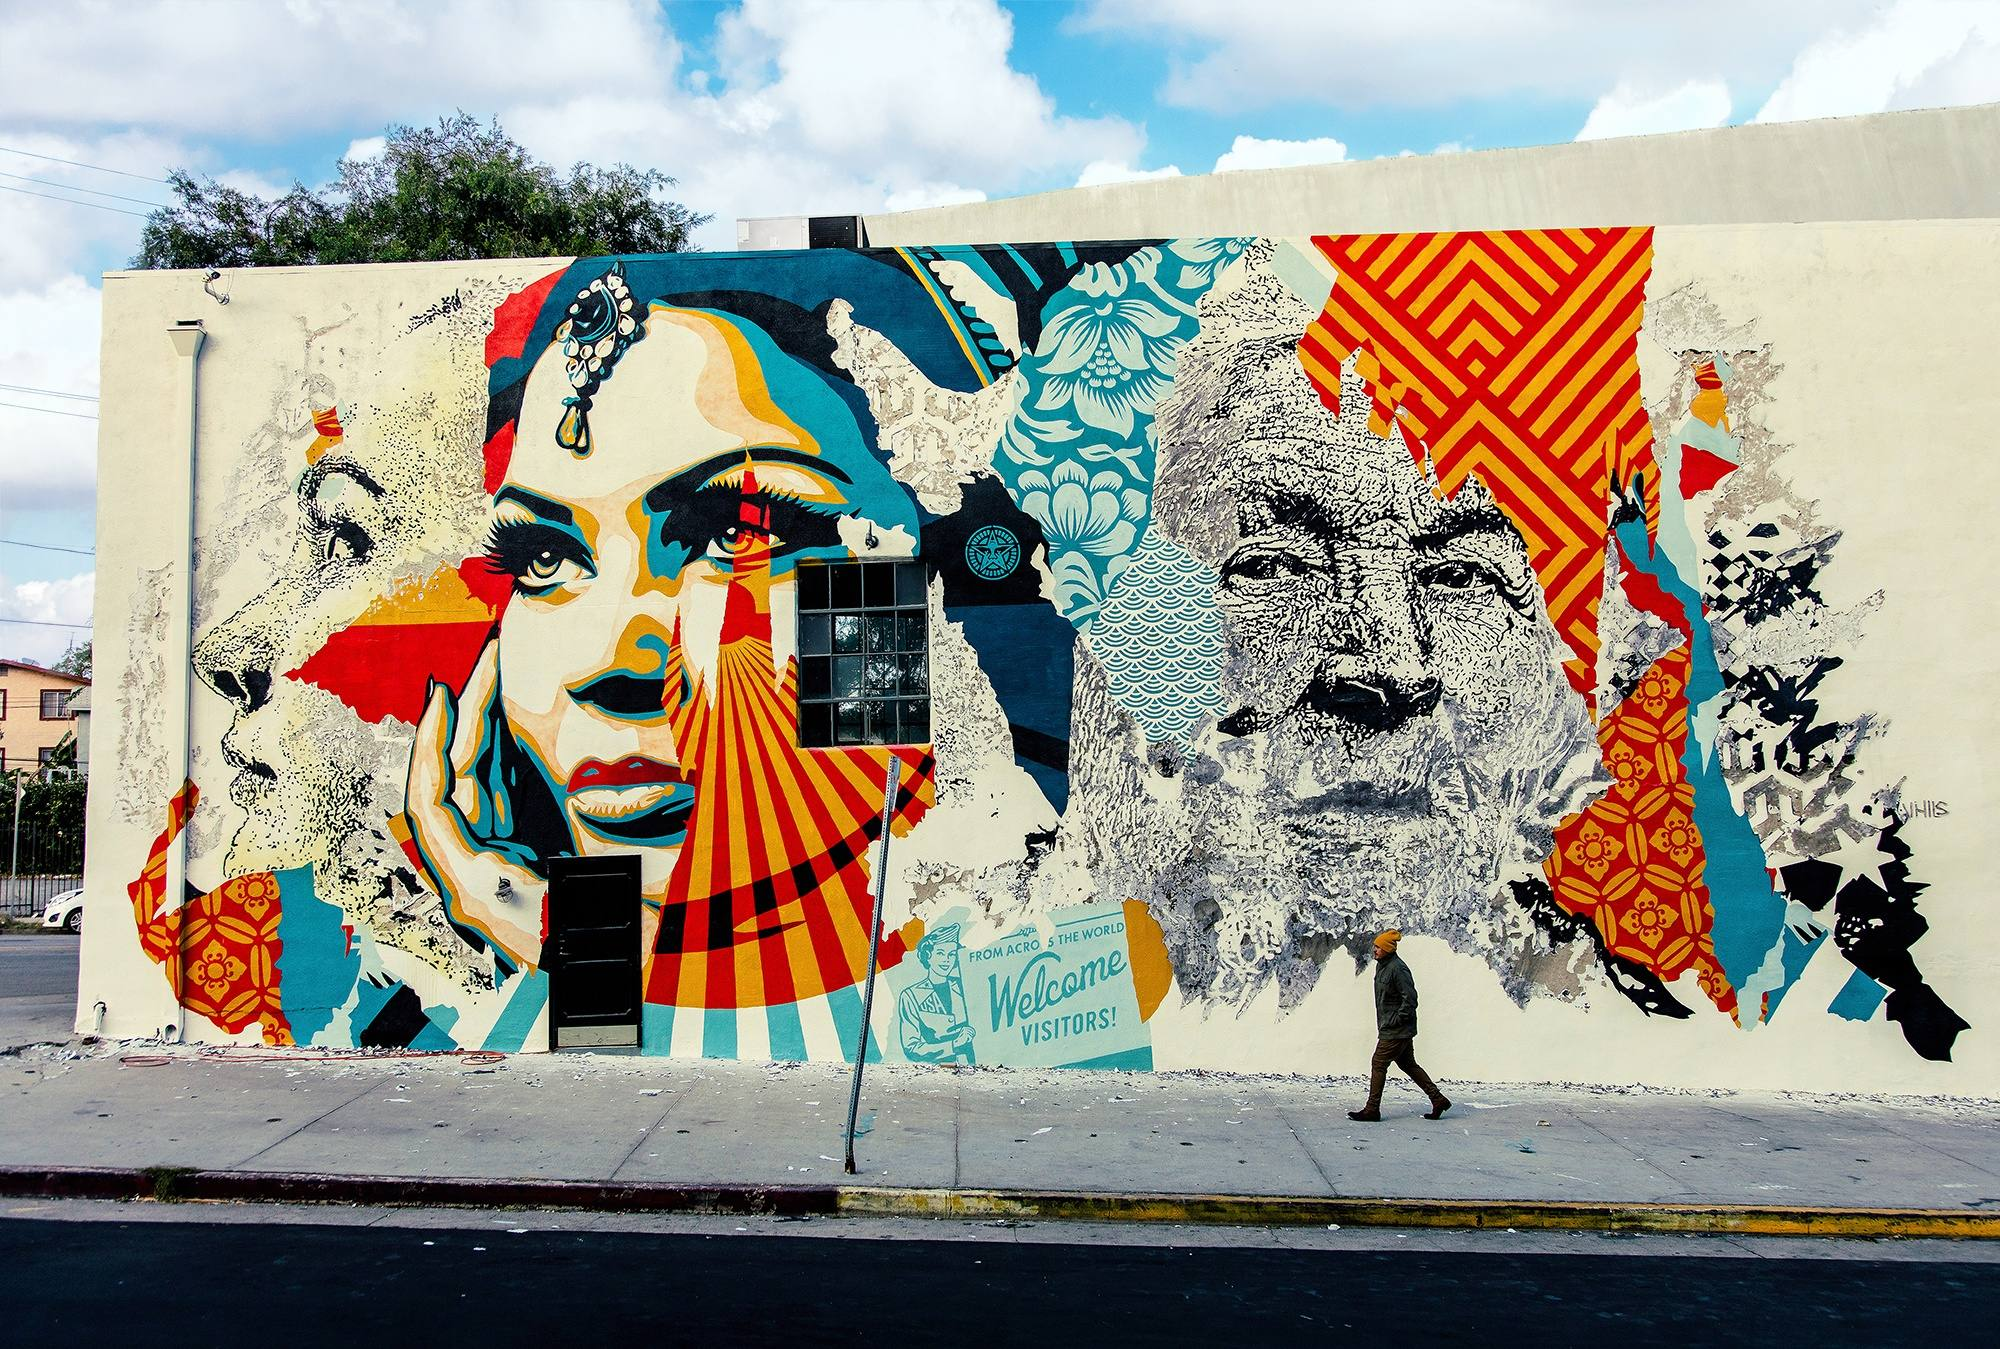 """American Dreamers"" by Shepard Fairey and Vhils 